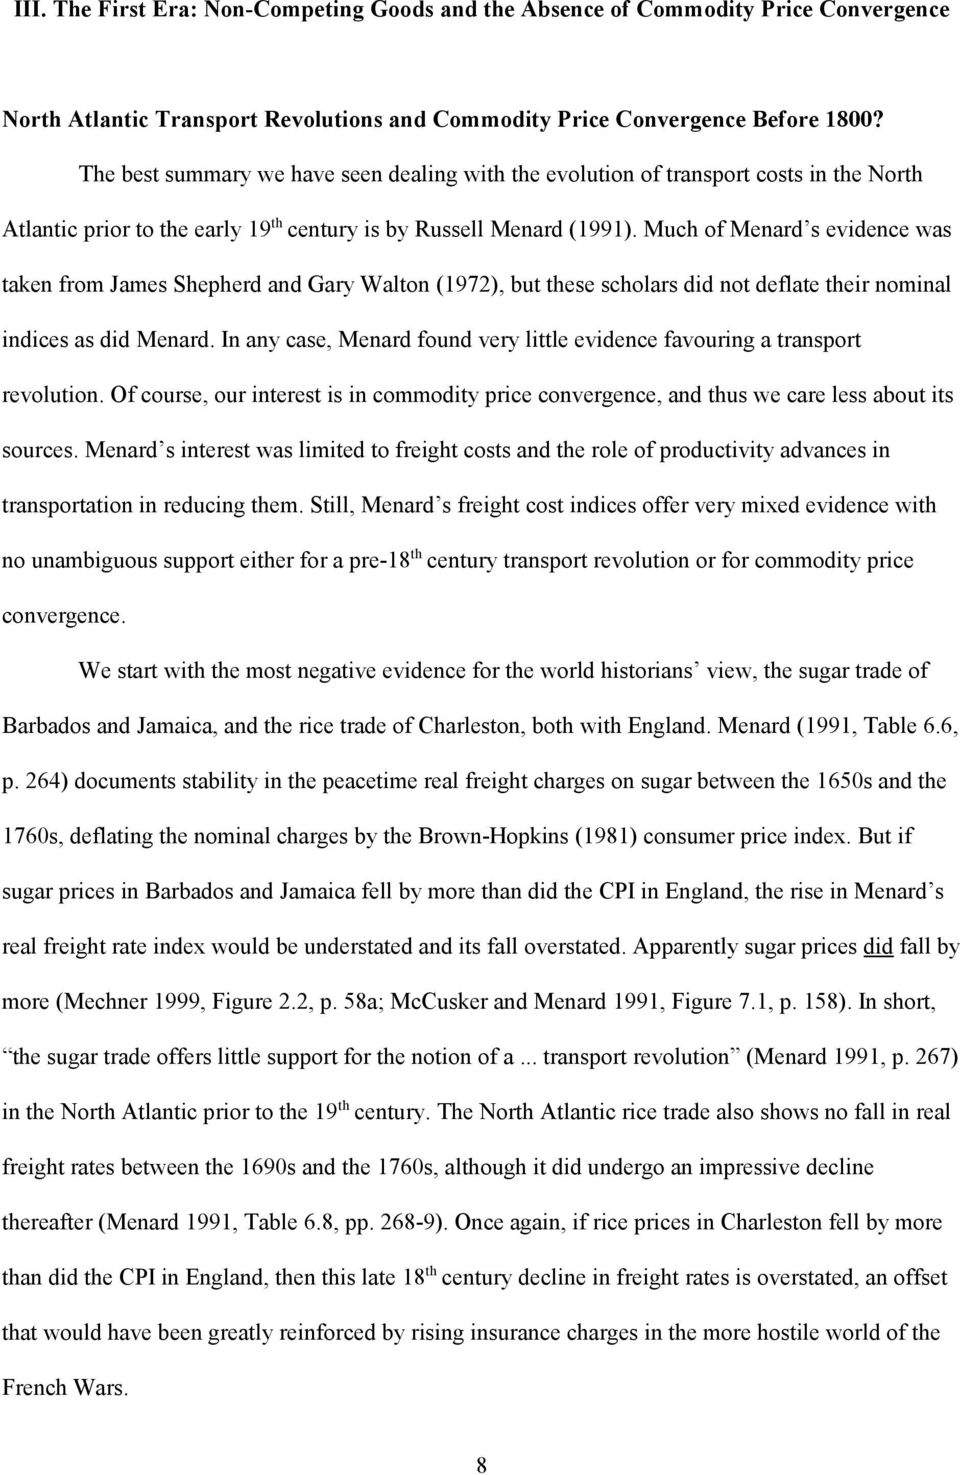 Much of Menard s evidence was taken from James Shepherd and Gary Walton (1972), but these scholars did not deflate their nominal indices as did Menard.